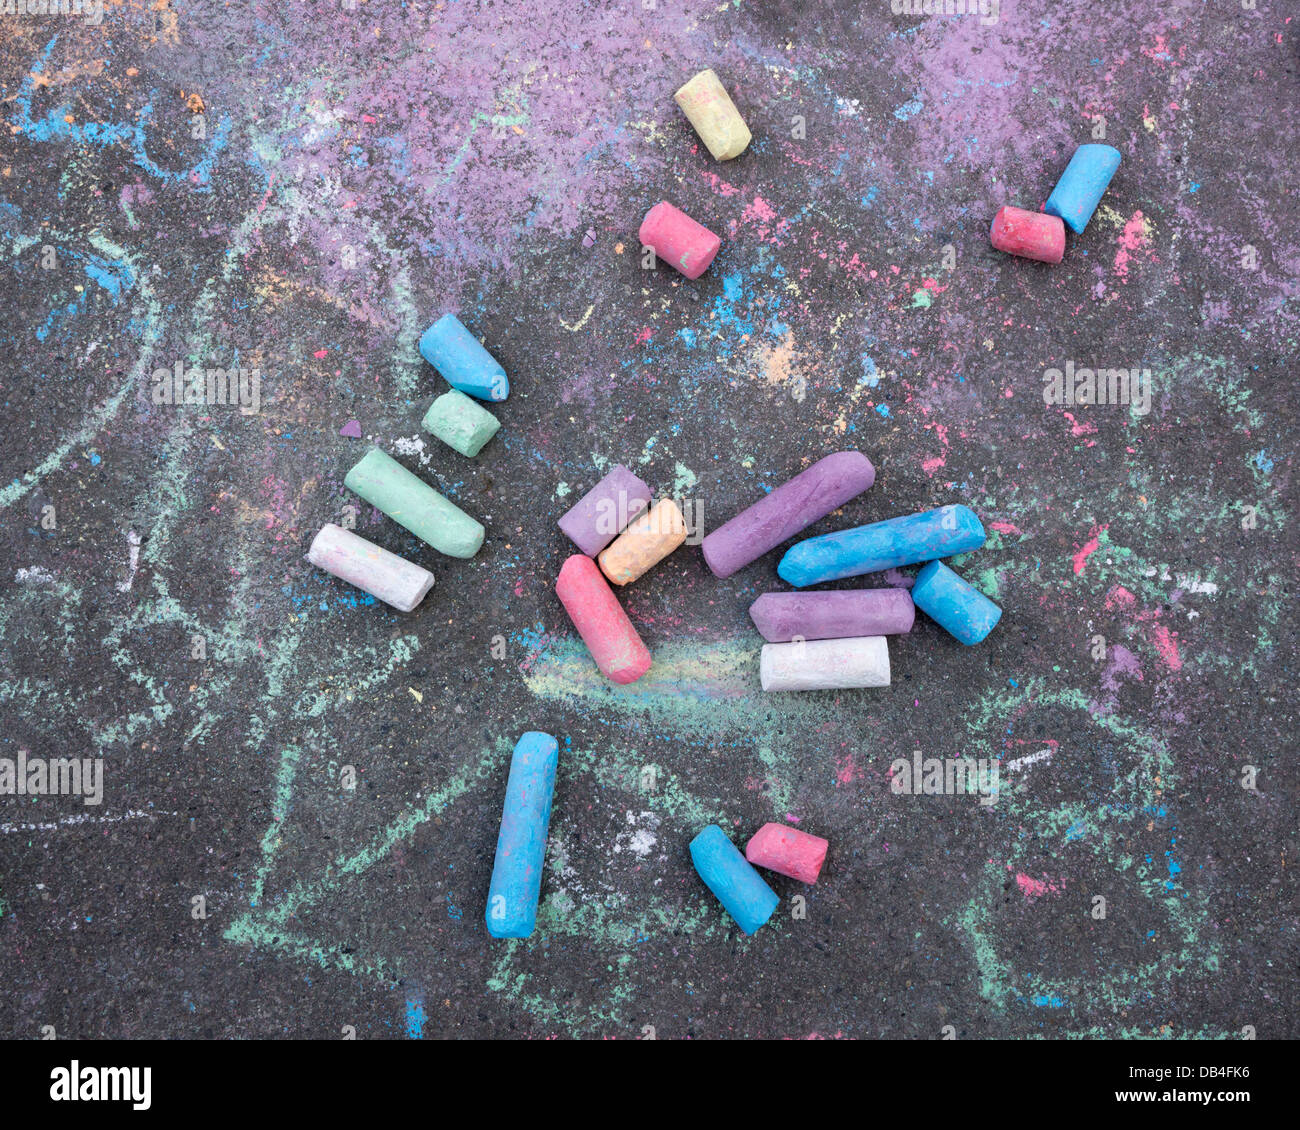 Pieces of chalk on the street - Stock Image